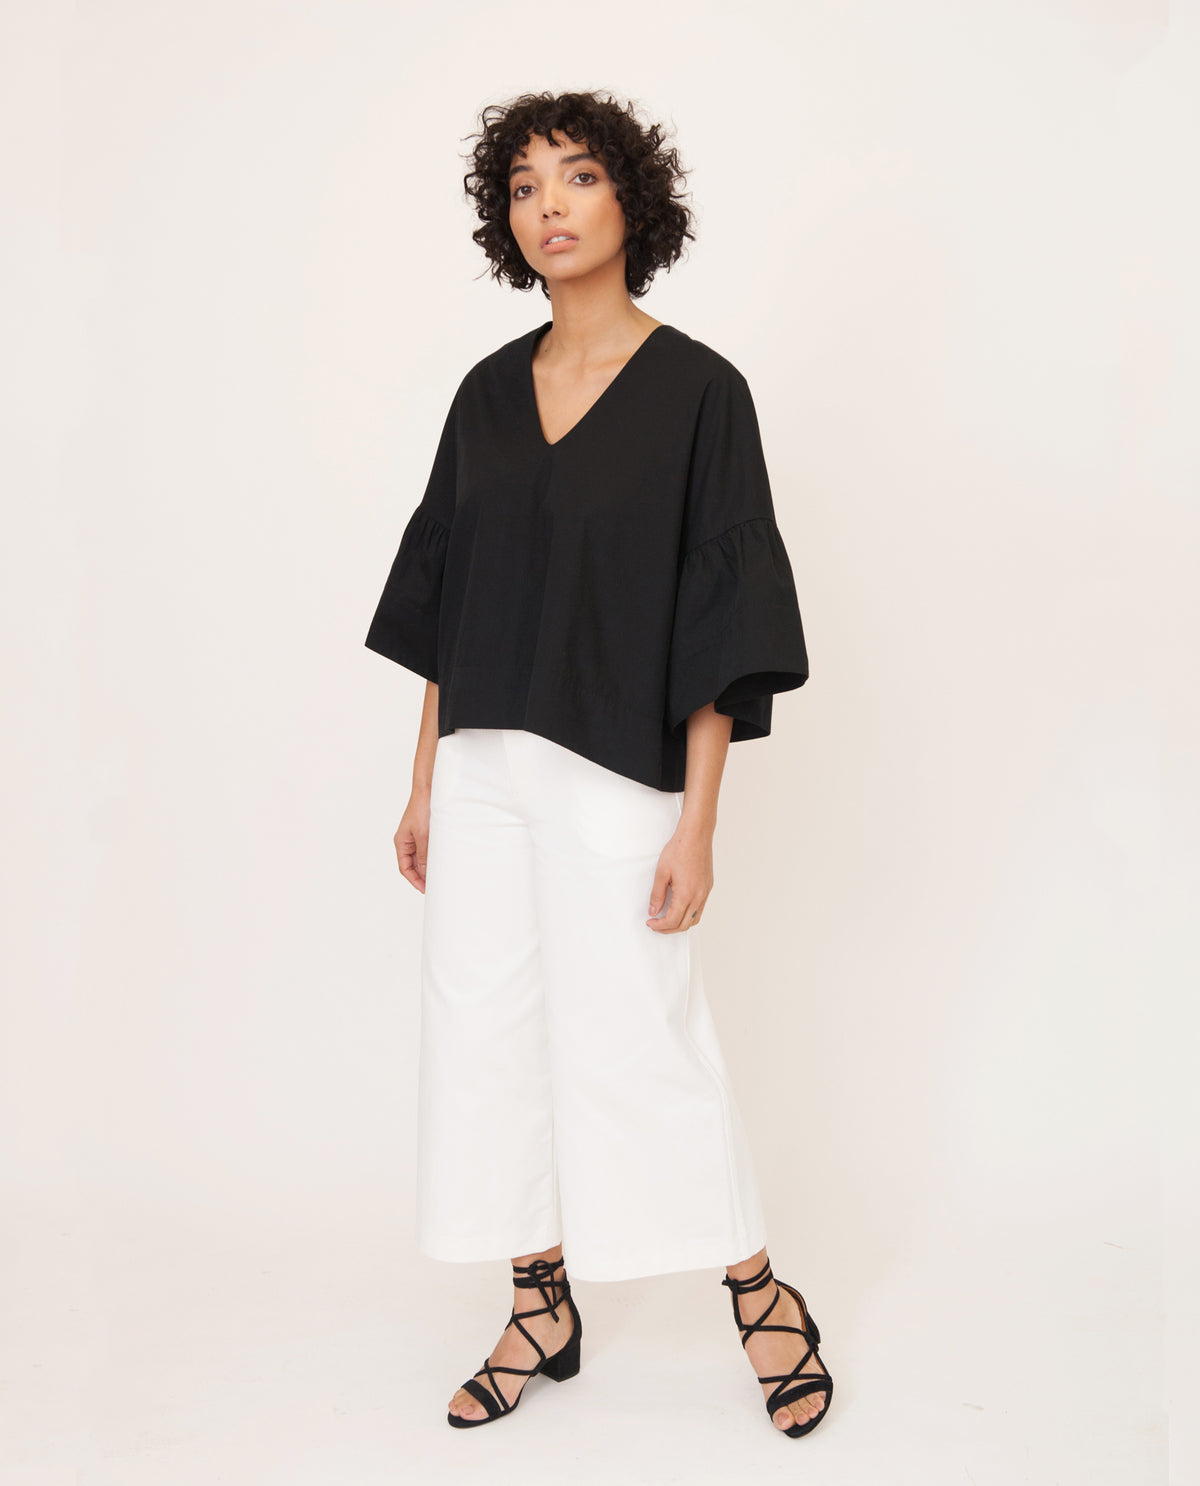 RITA-MAE Cotton Poplin Top In Black